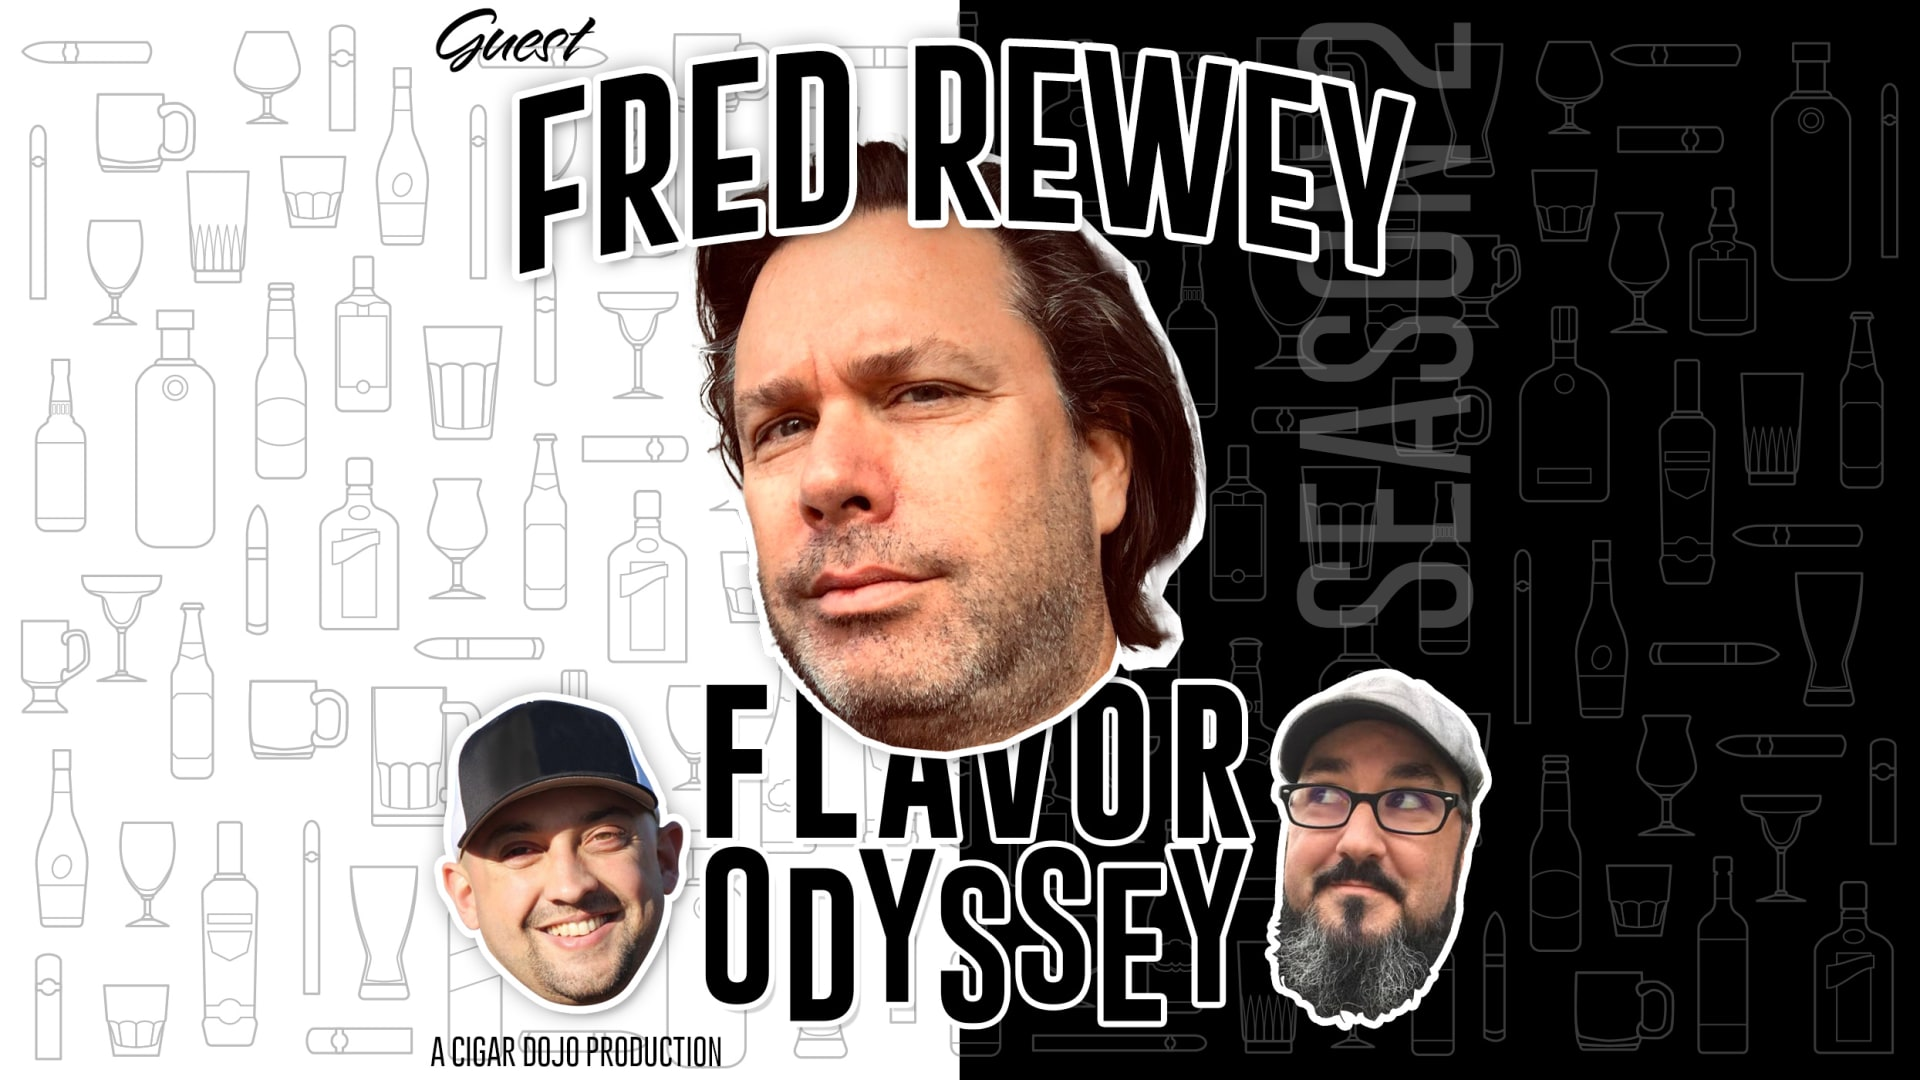 Flavor Odyssey – Bacon & Cigars With Fred Rewey Featured Image